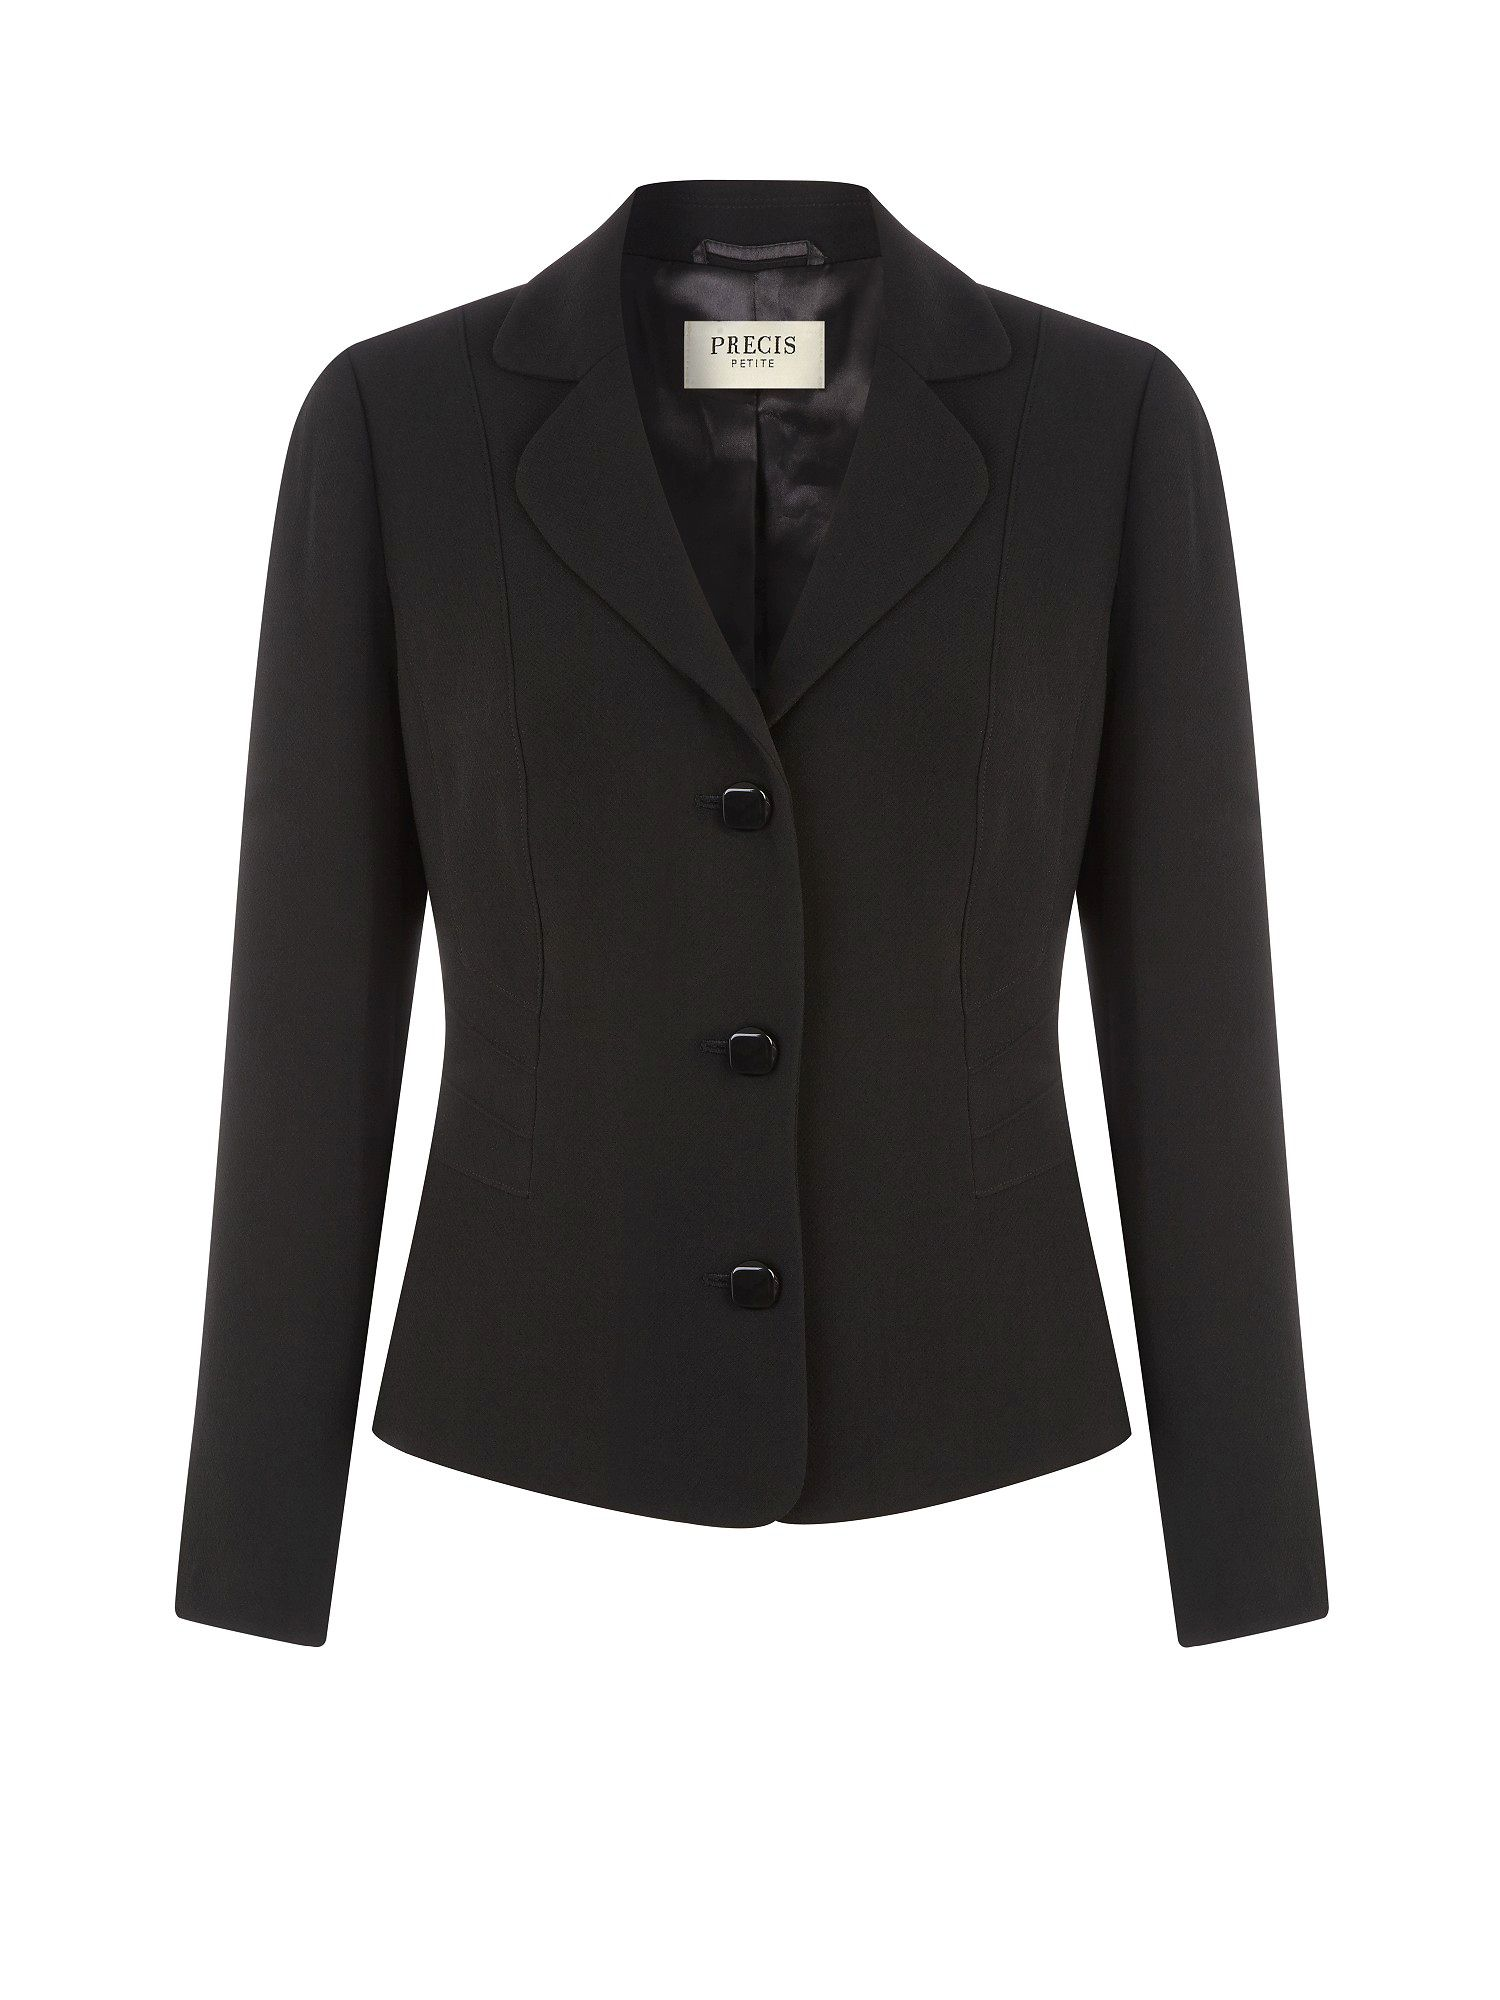 Black textured workwear jacket